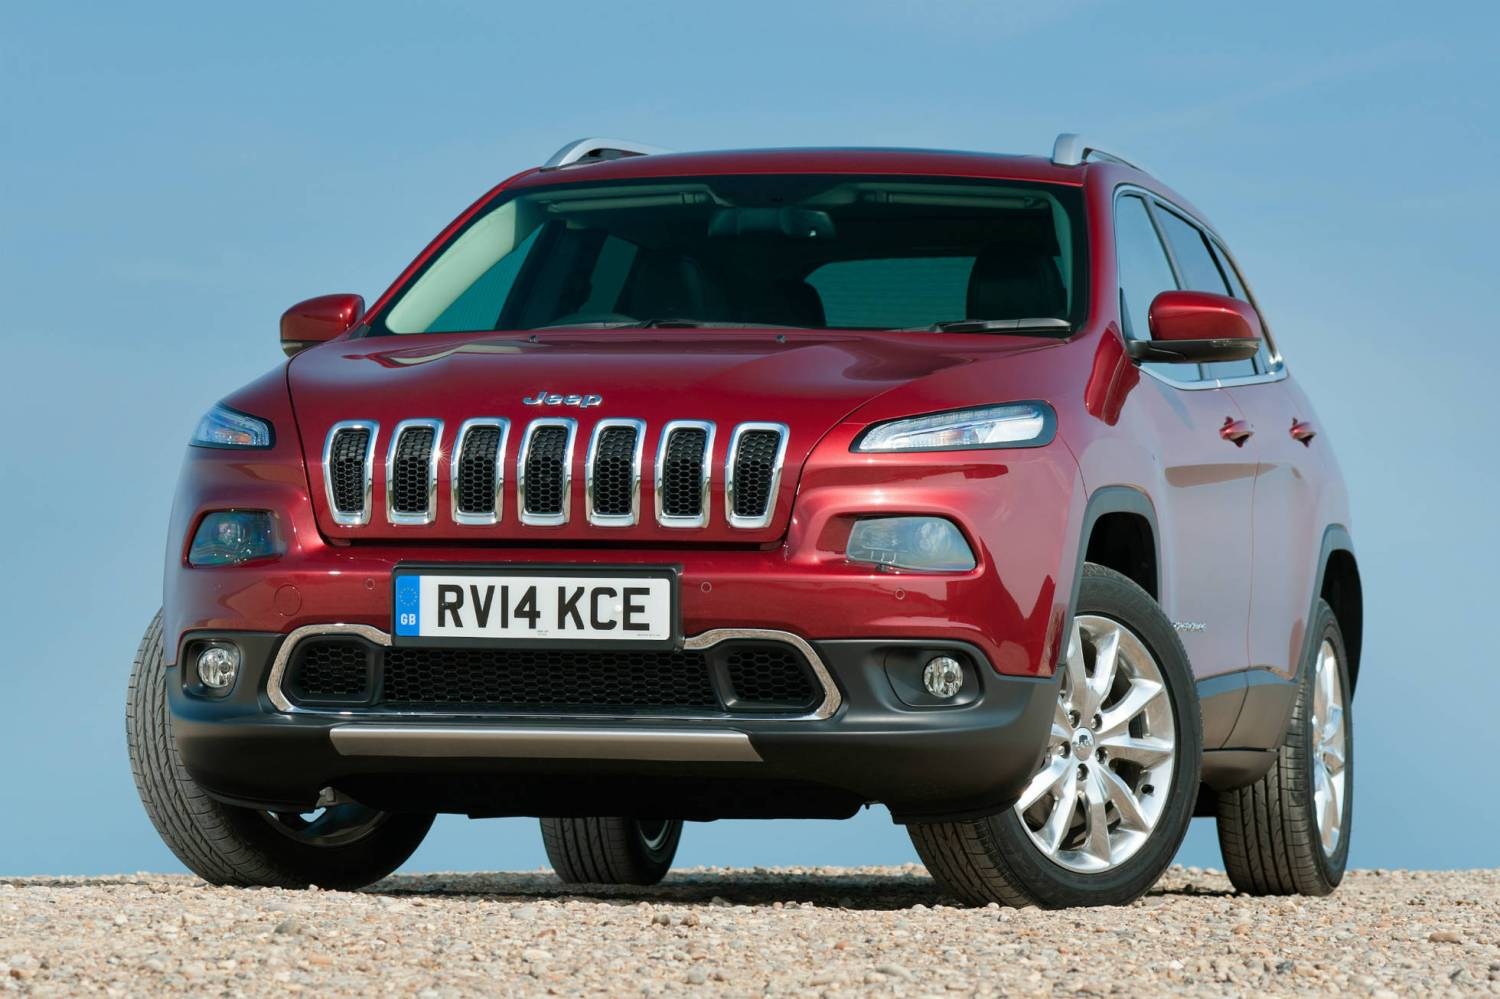 Jeep slammed for encouraging dangerous driving in radio advert